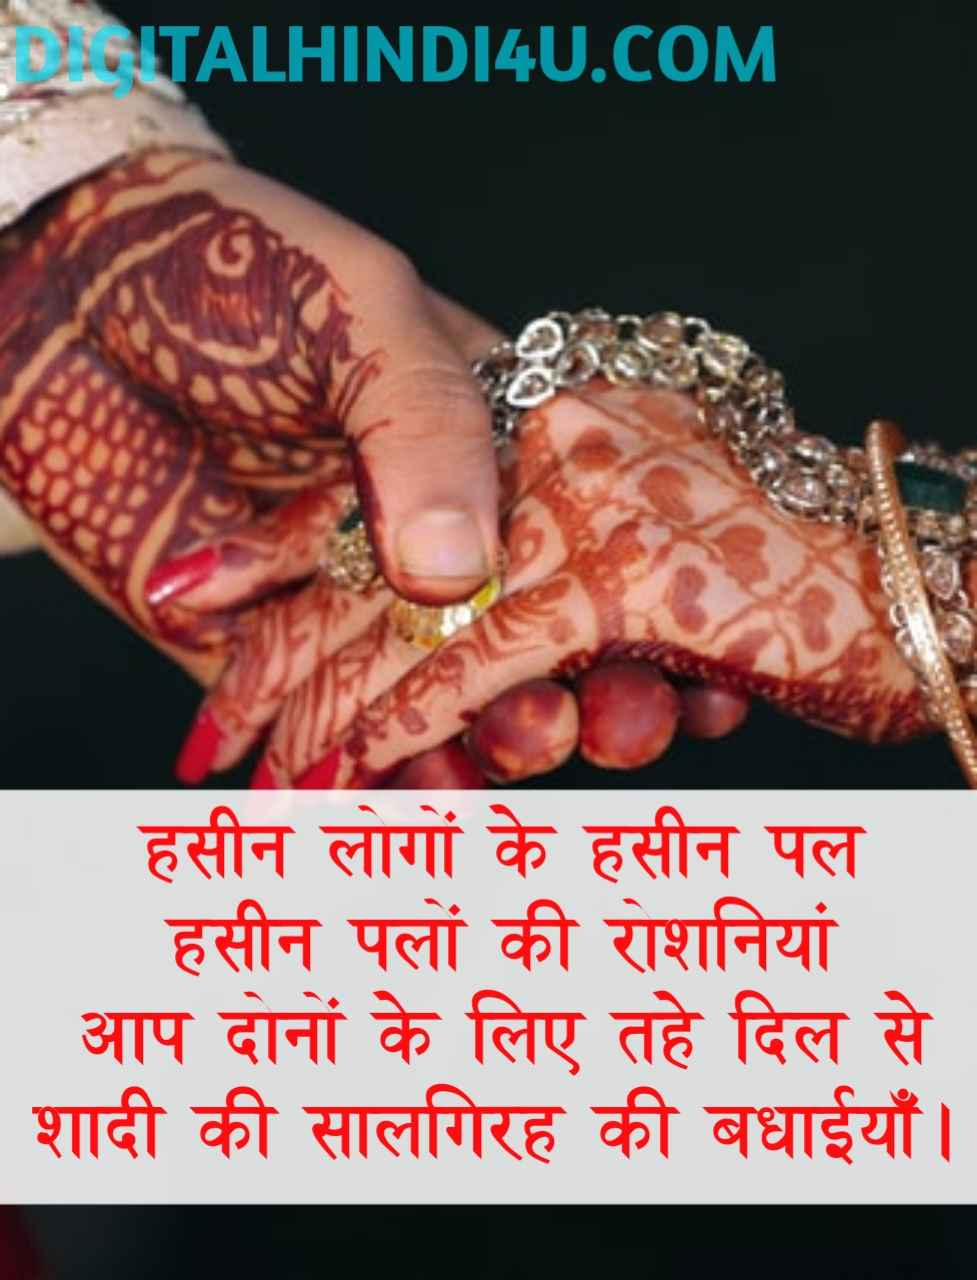 Marriage-Anniversary-Wishes-image-download